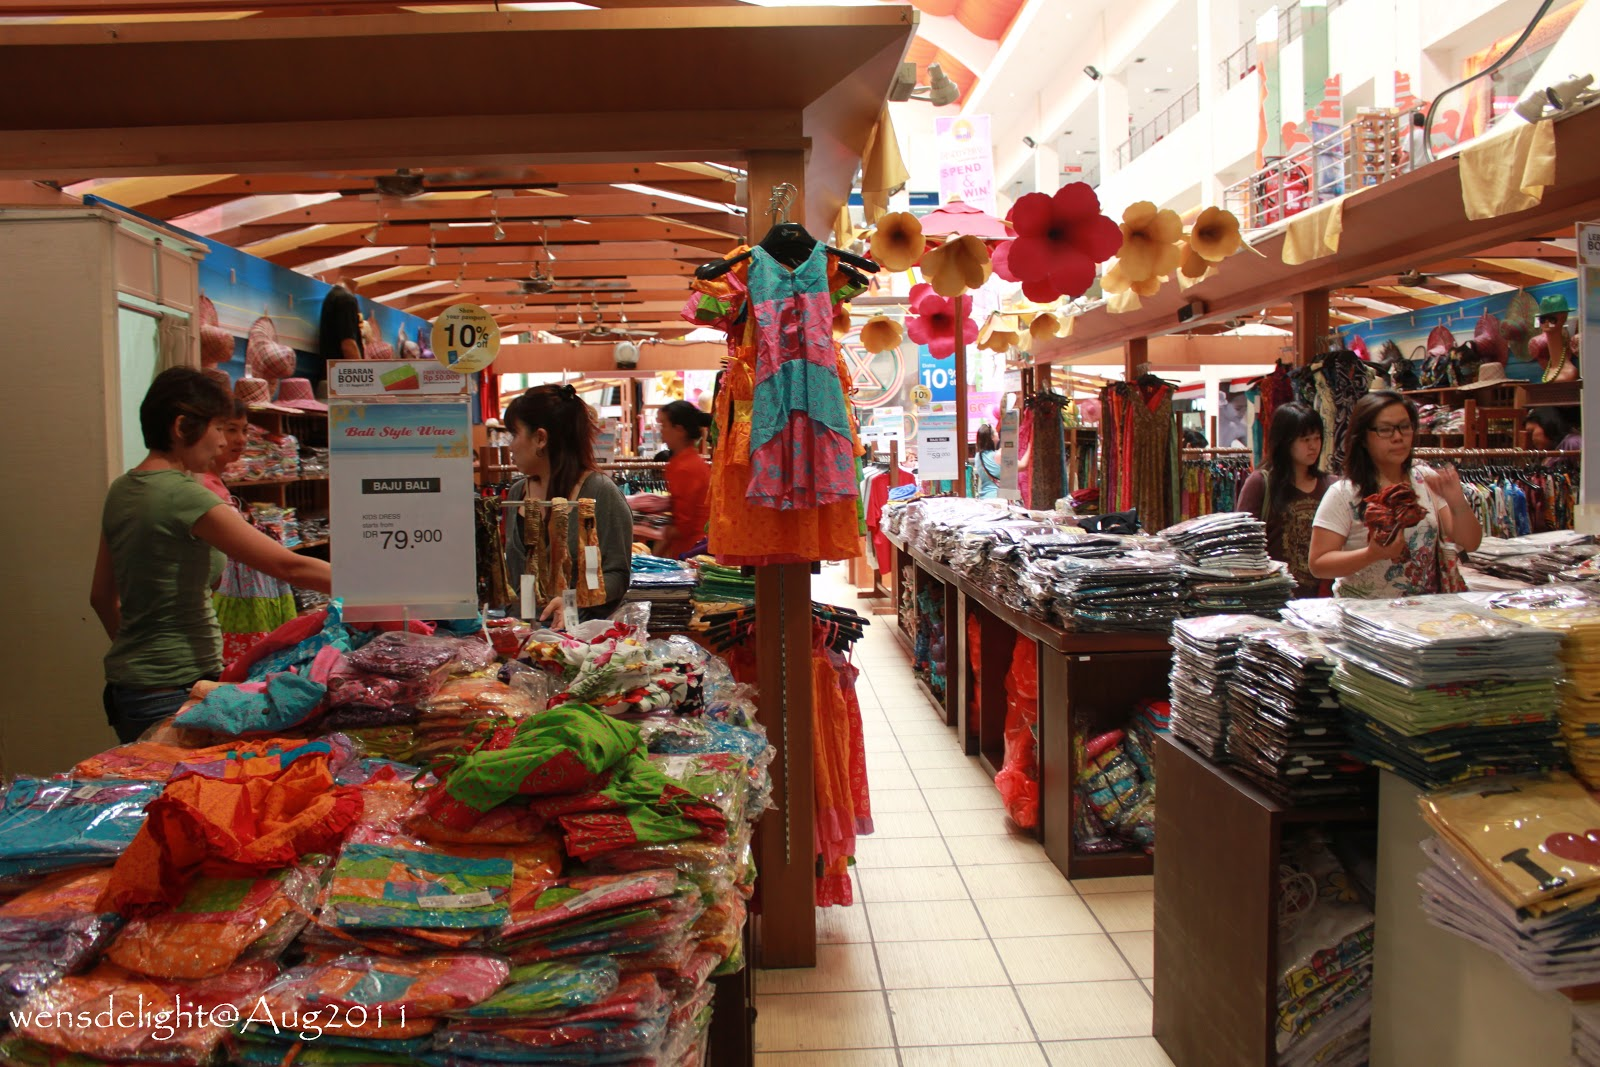 Bali online shopping pictures to pin on pinterest - pinsdaddy